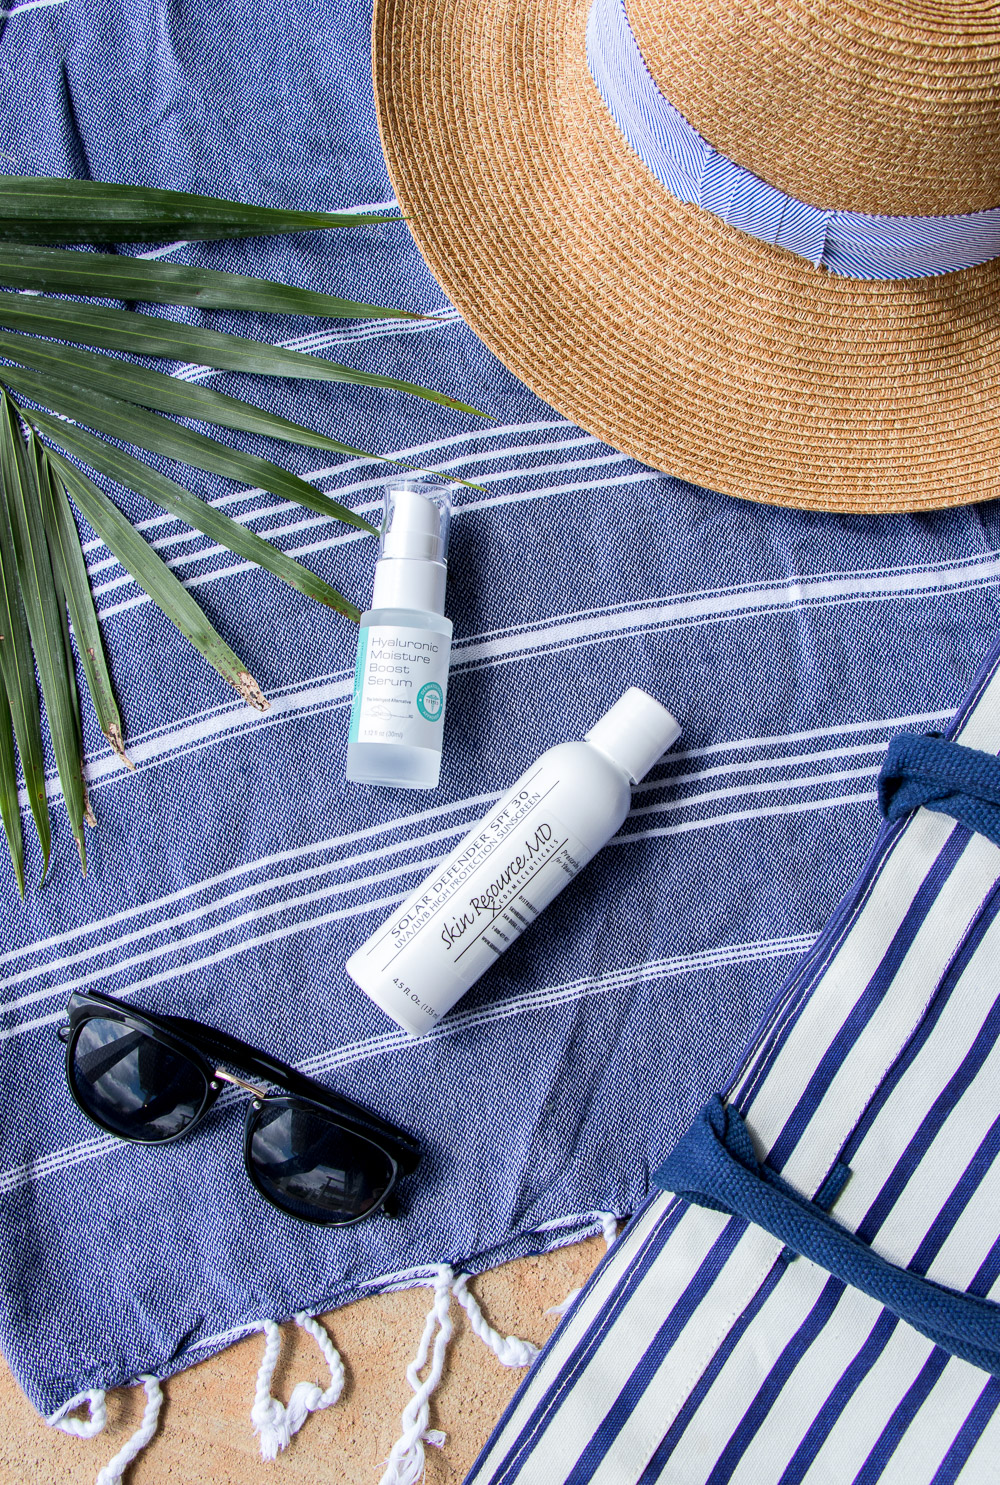 Summer Skin protection